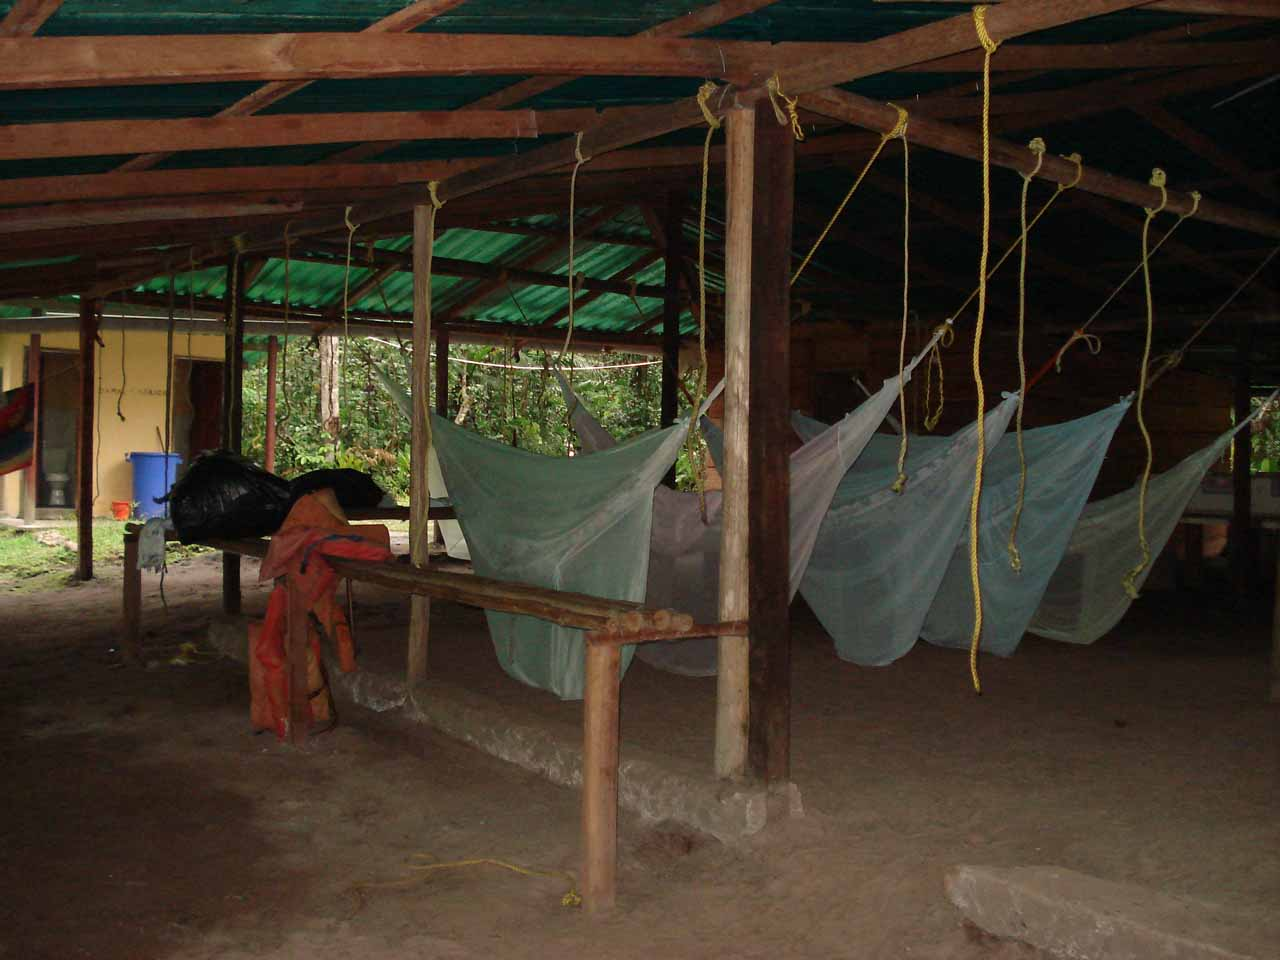 Yep, we had to sleep in hammocks with mosquito nets